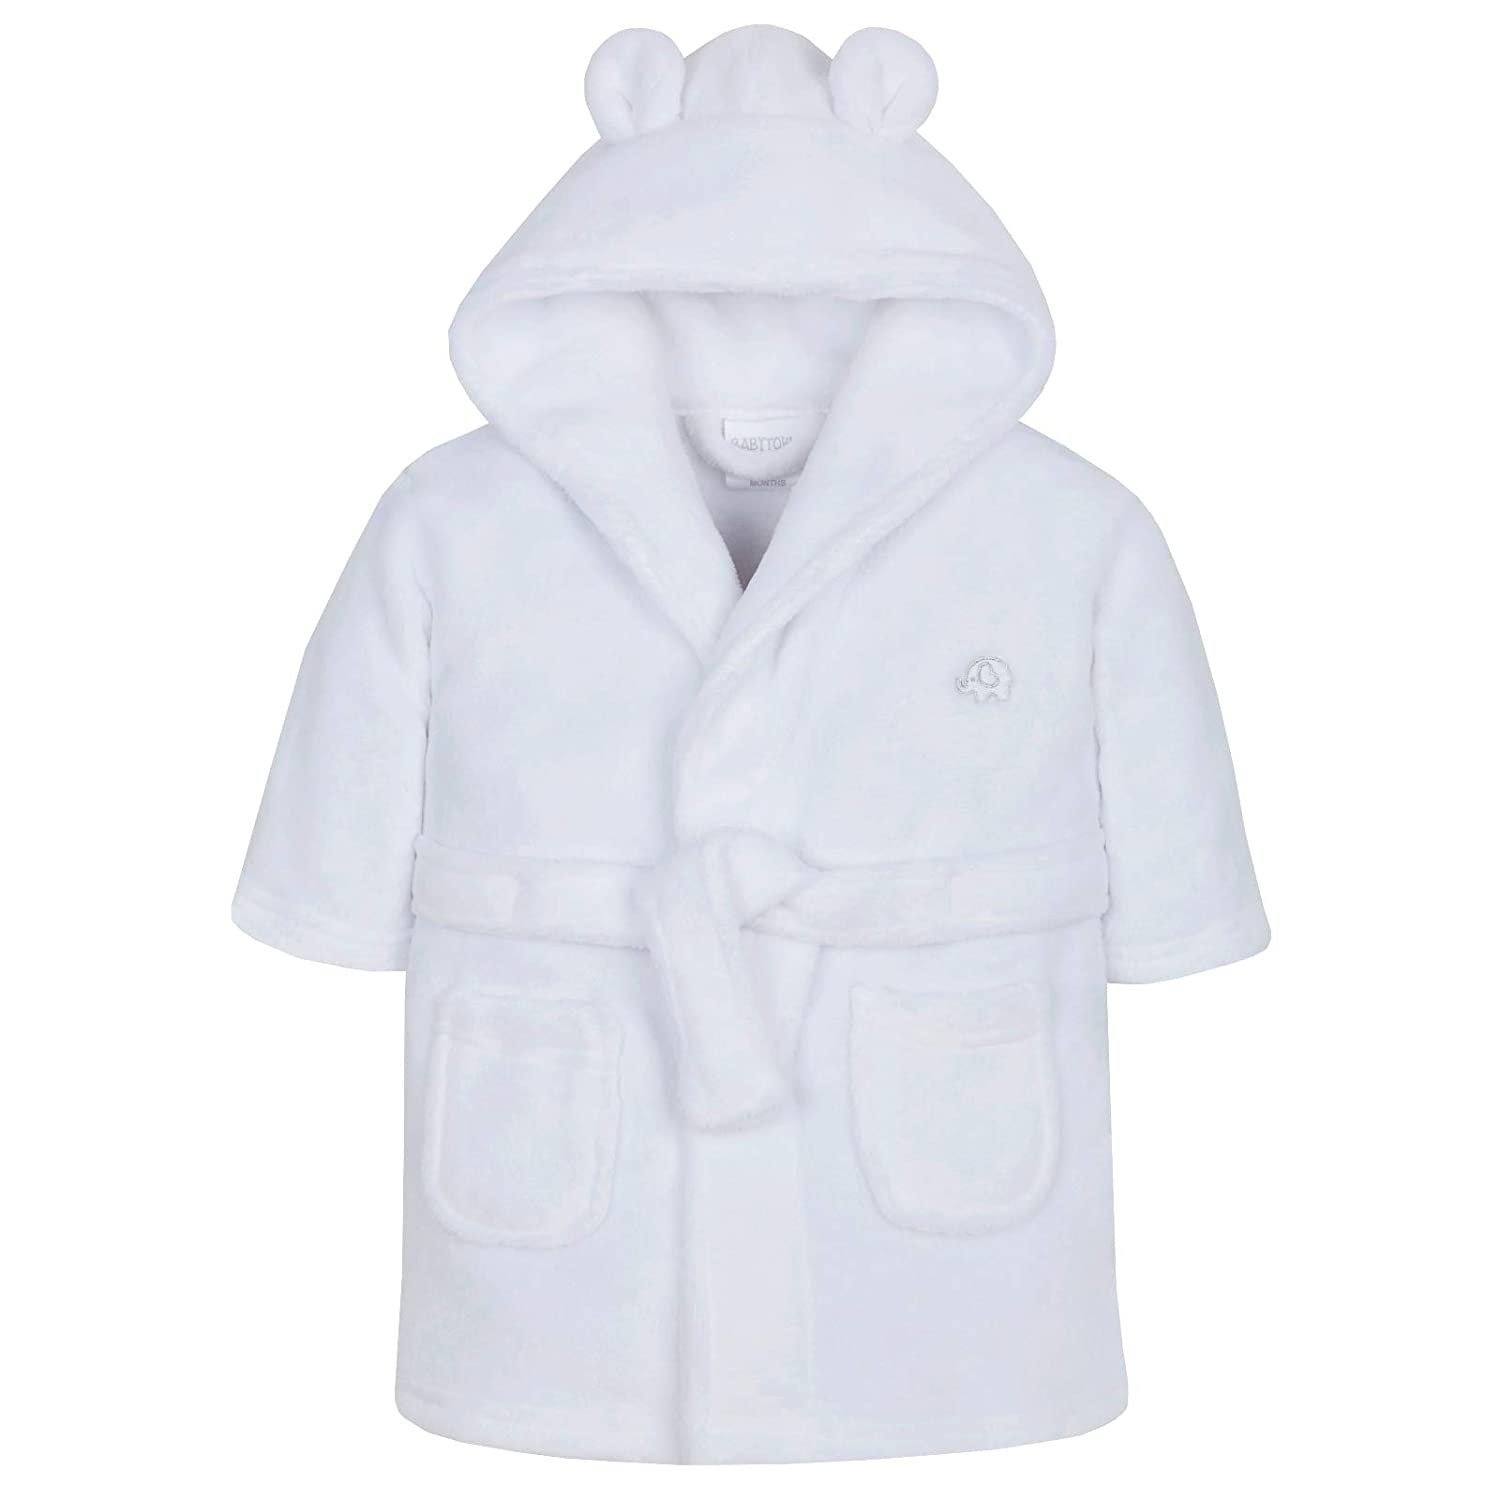 Lora Dora Baby Jungen Kapuzen Fleece Bademantel Soft Bademantel Gr/ö/ße 6 24/ Monate